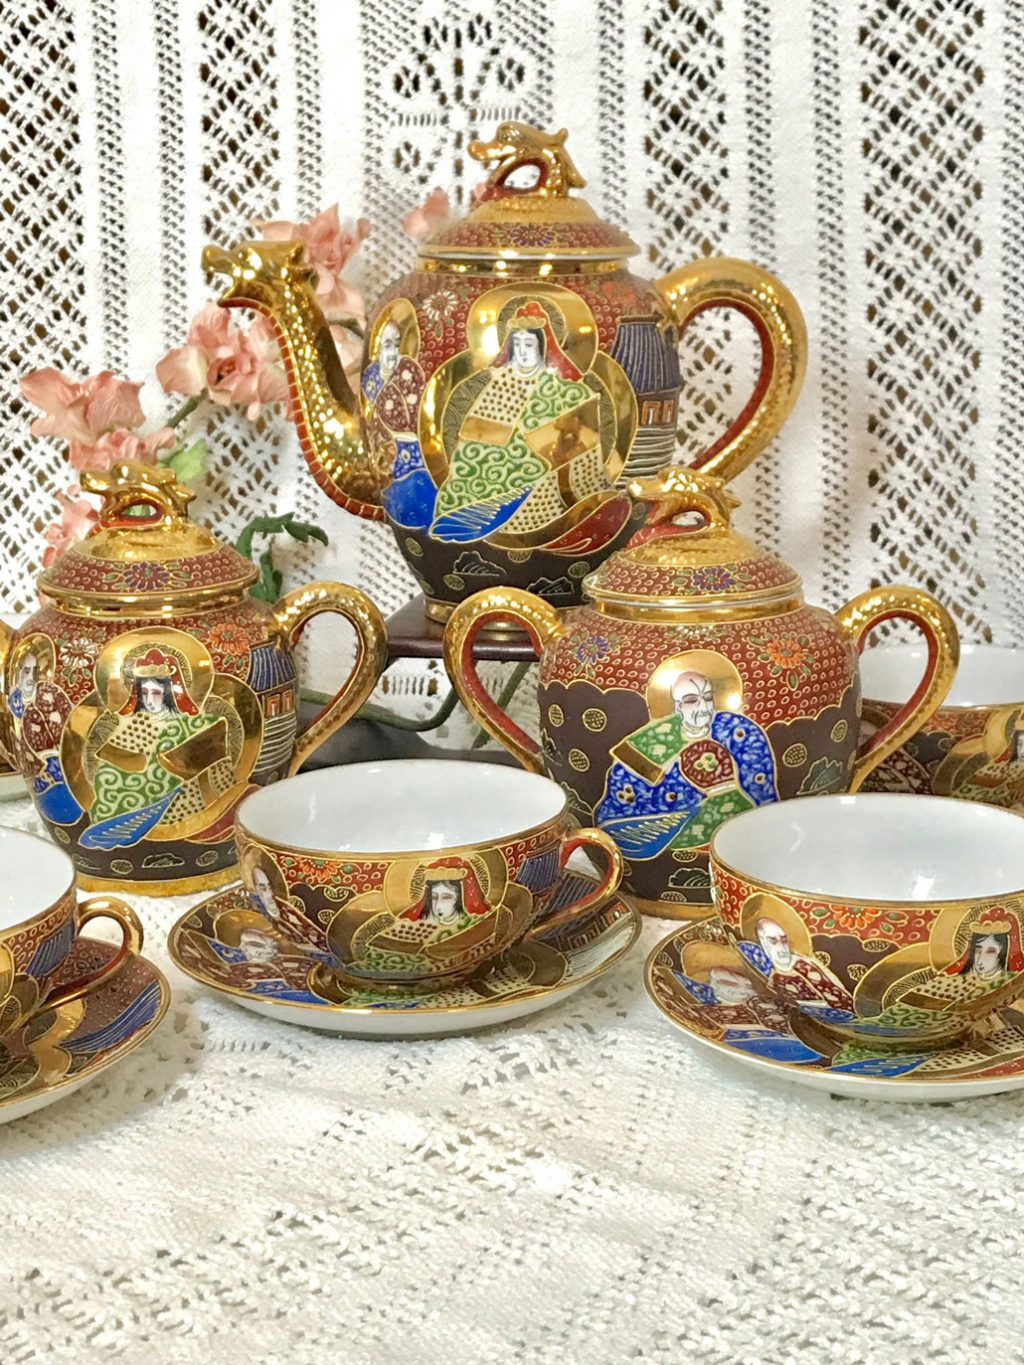 Wickstead's-Japanese-Red-Gold-Dragon-Moriage-Fine-Eggshell-Porcelain-Tea-Set-(9)